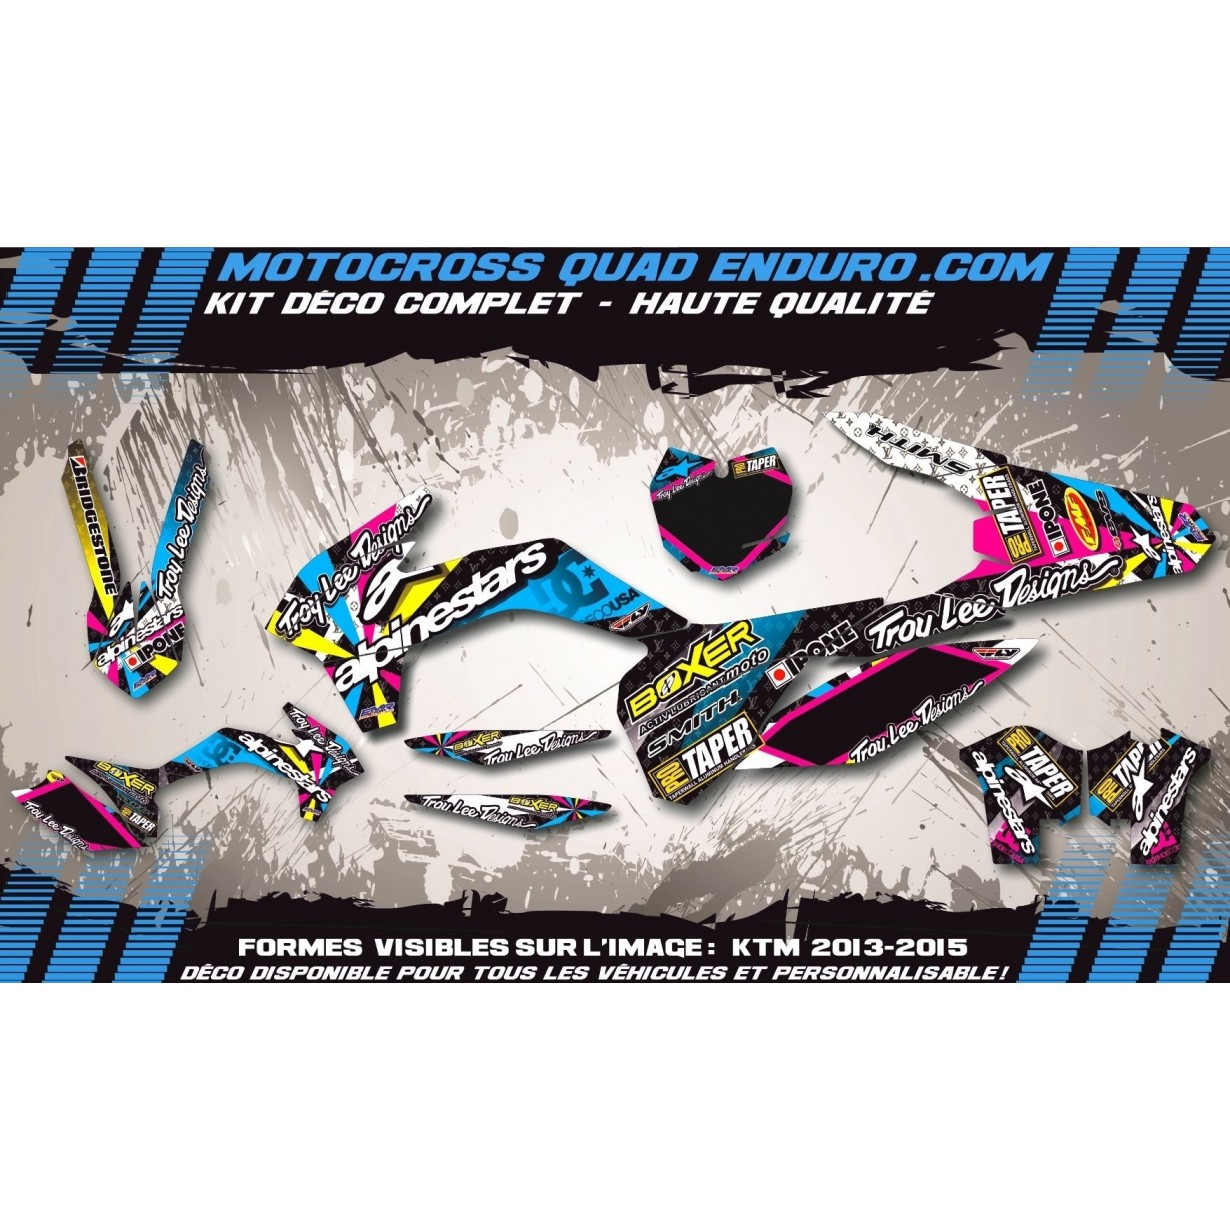 KIT DÉCO Perso 85 RM 02-15 ALPINESTAR MA4A